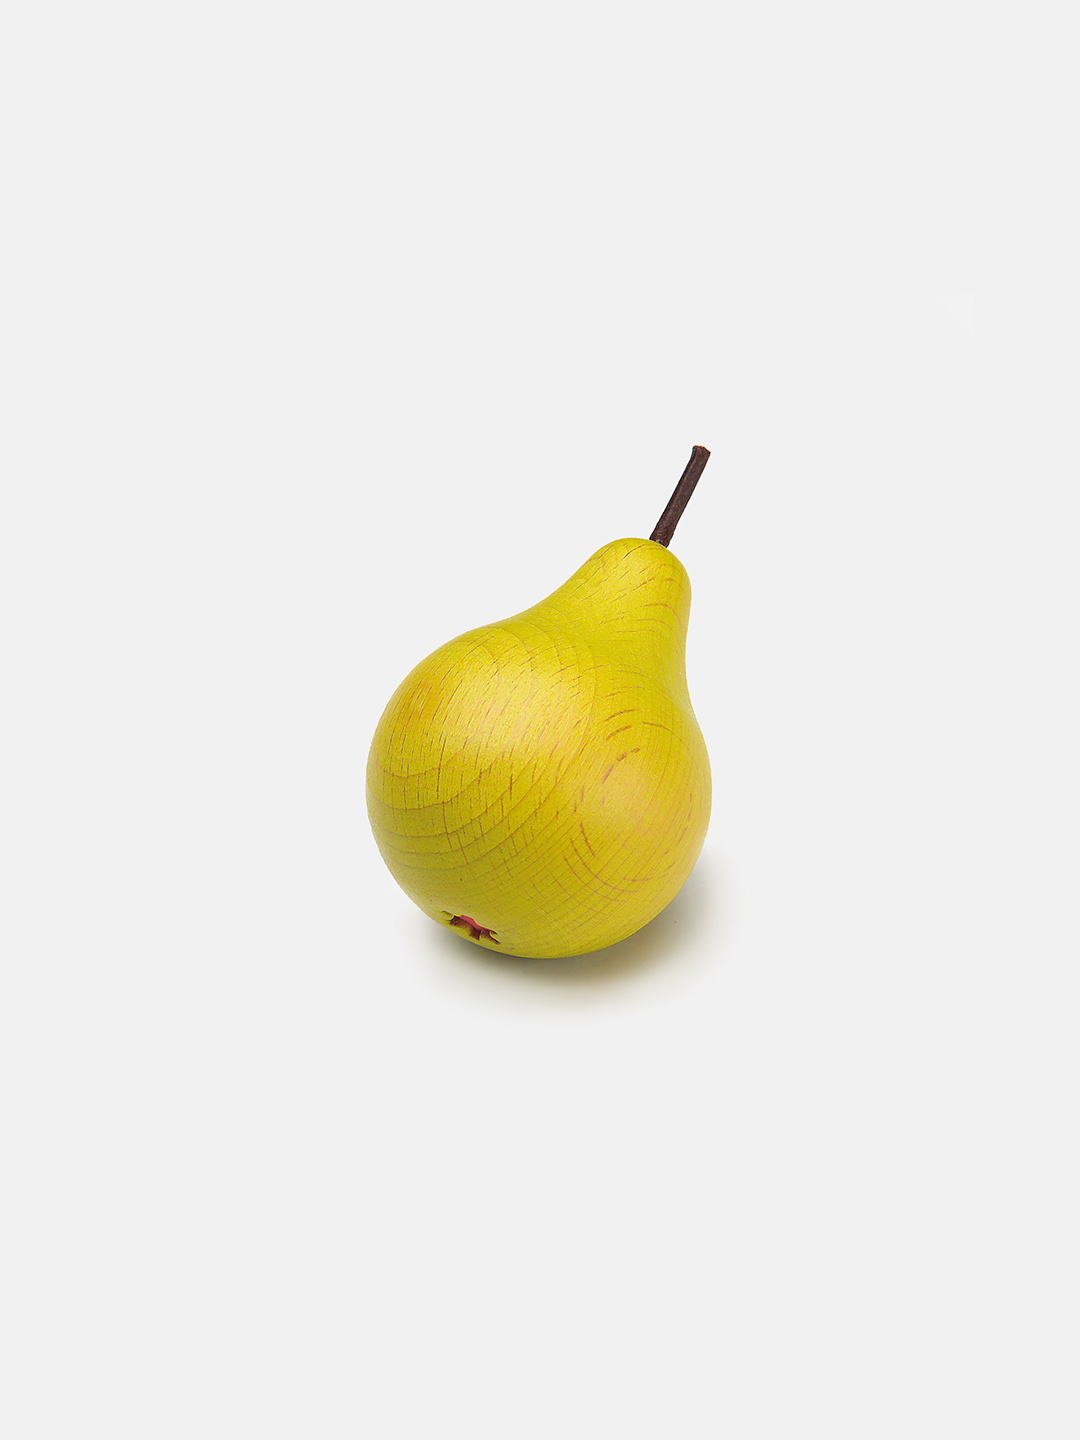 Wooden Fruit - Green Pear